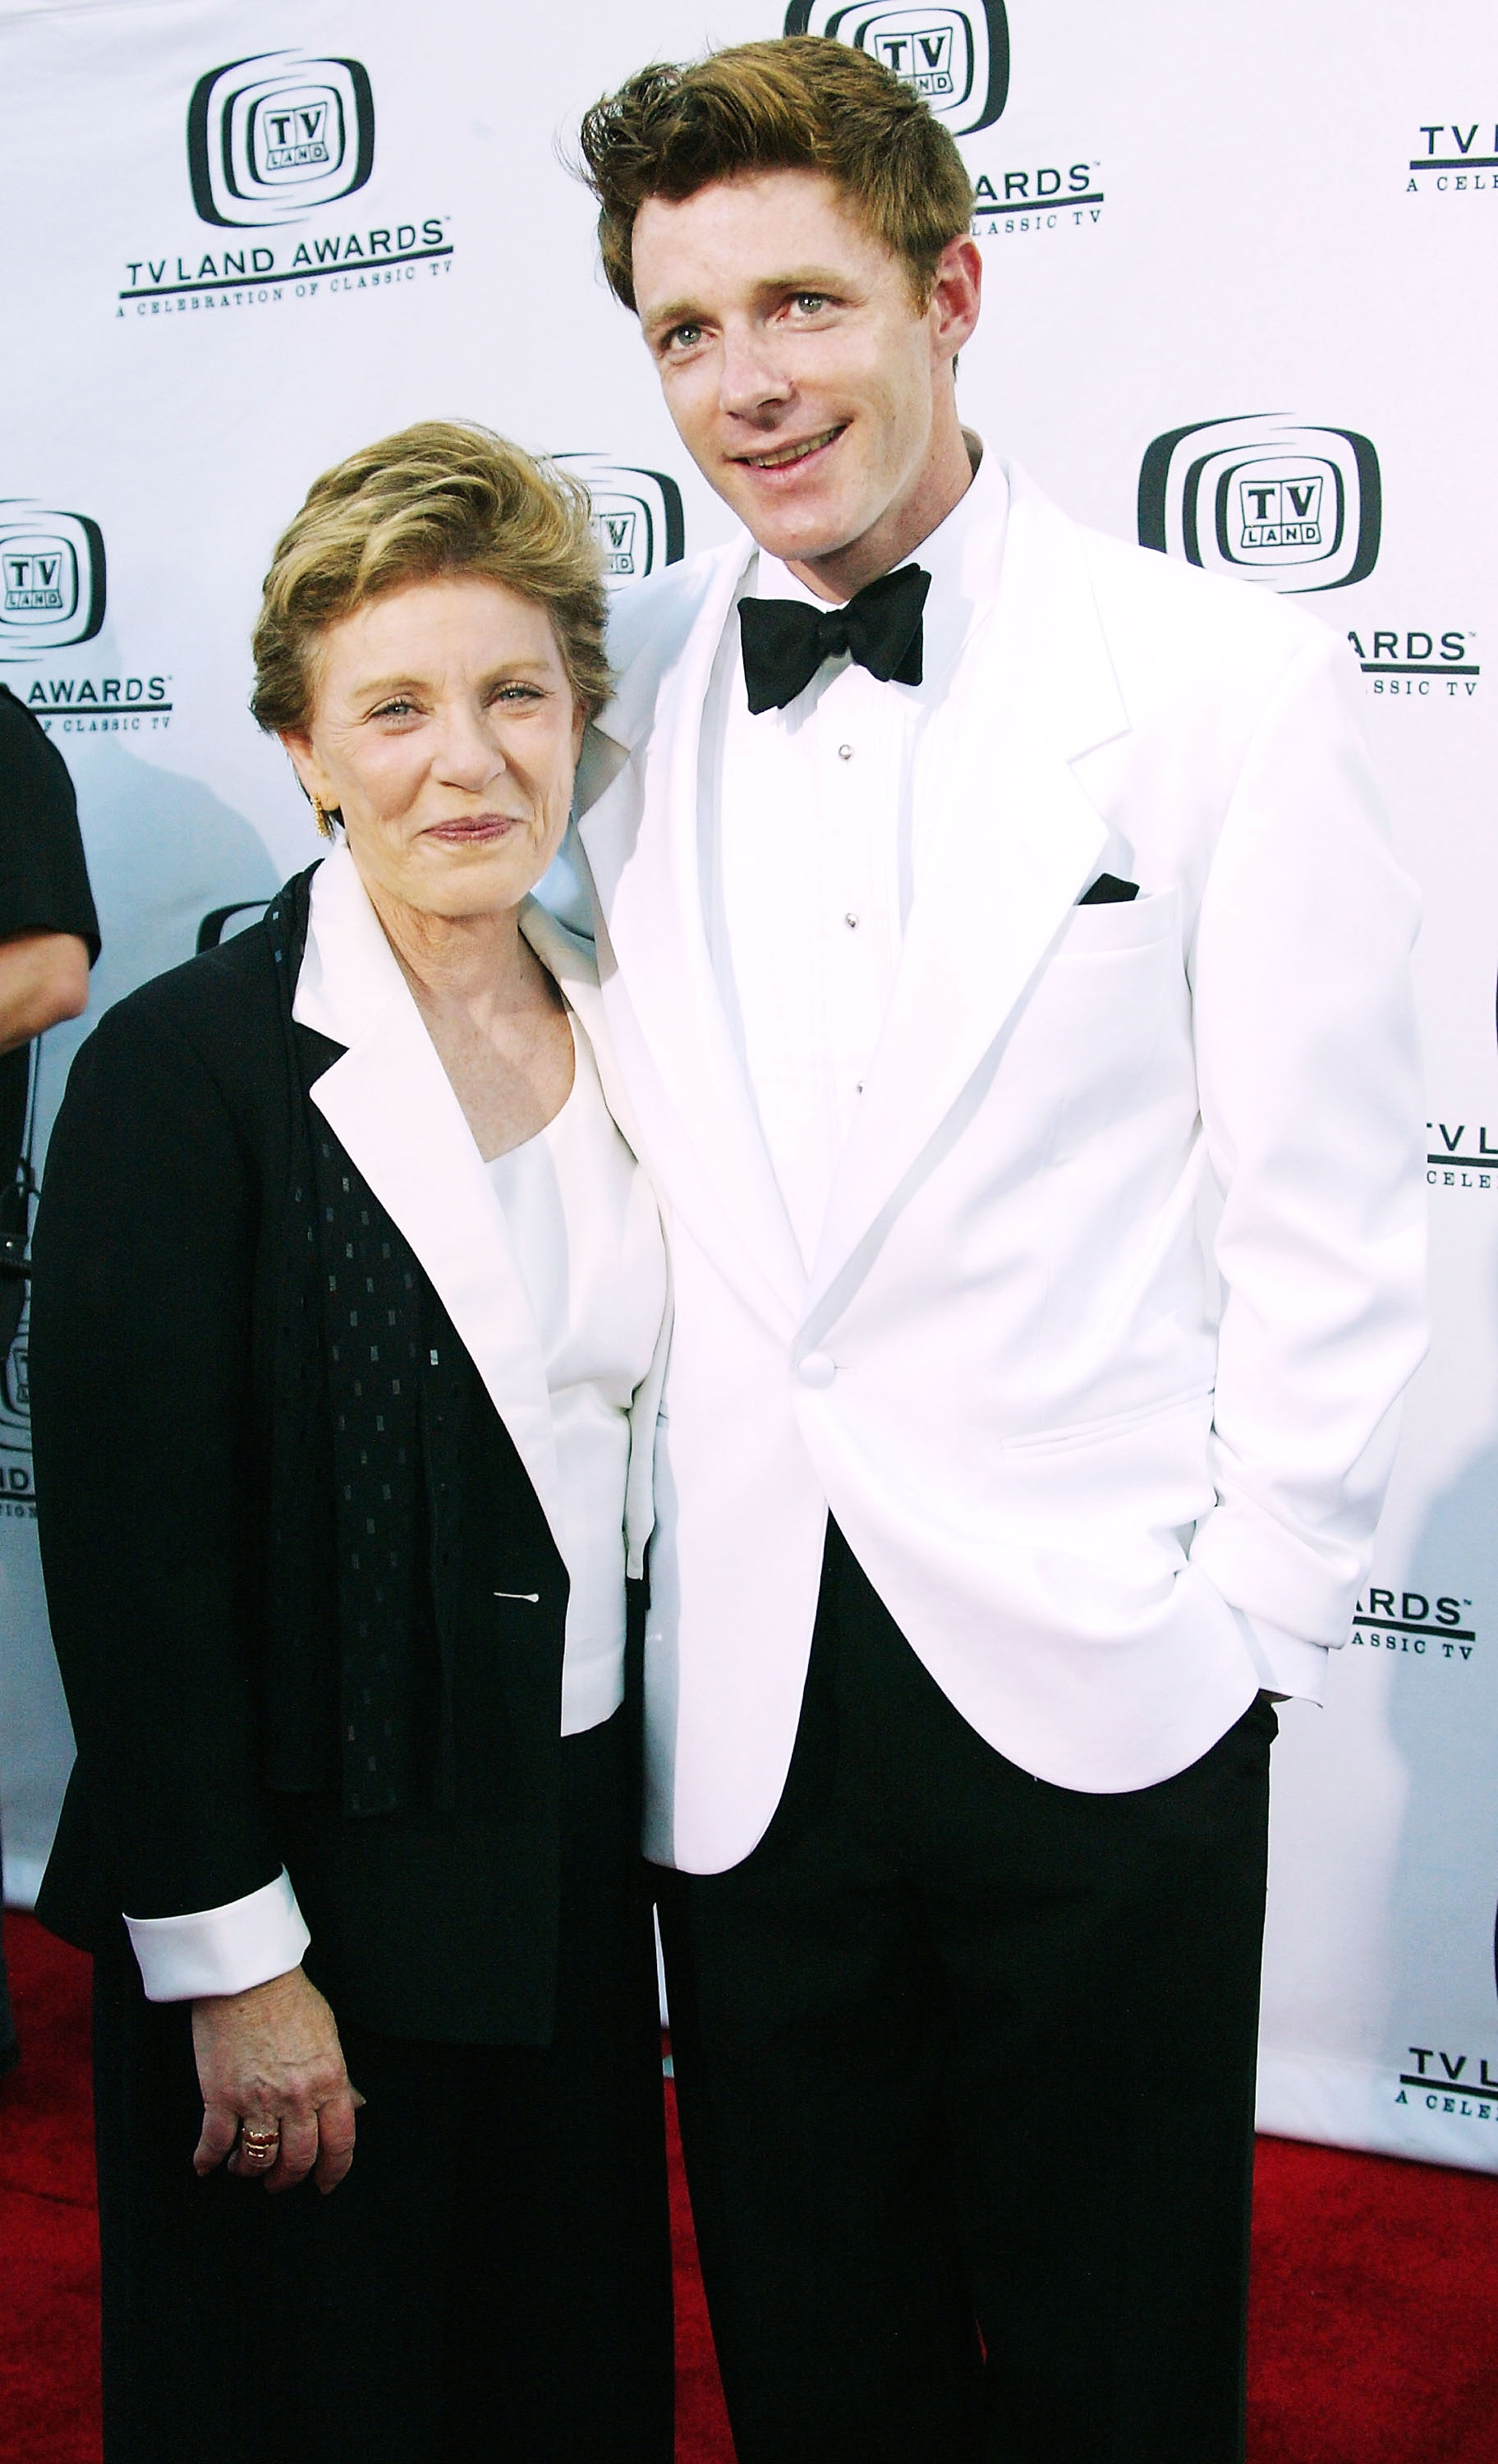 Actress Patty Duke (left) and her son Mackenzie Astin attend the 2nd Annual TV Land Awards at The Hollywood Palladium, in Hollywood, California. (Photo by Frederick M. Brown/Getty Images)